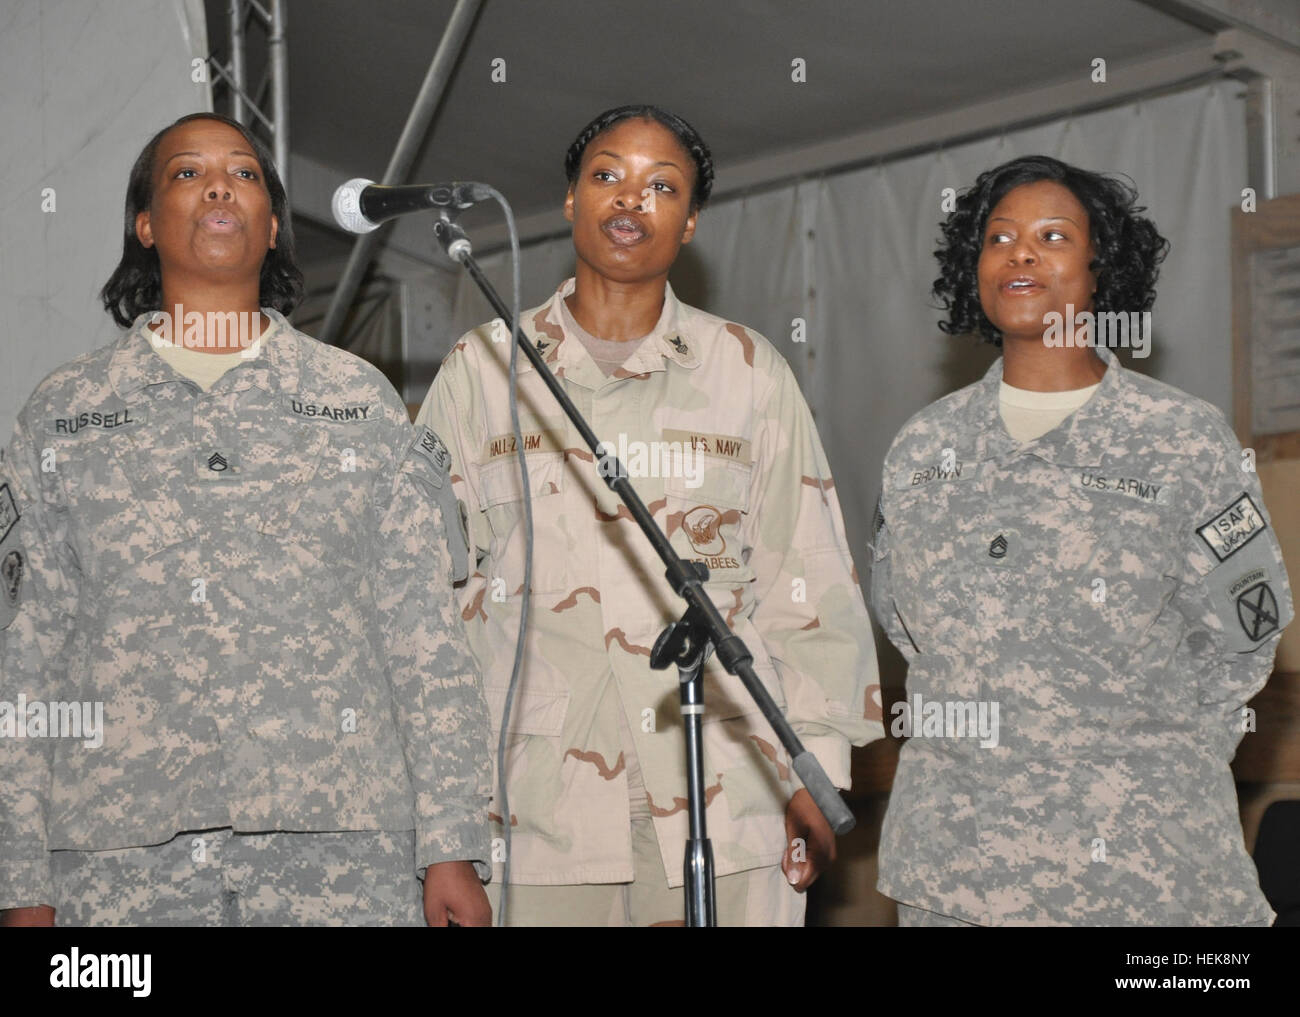 (From left) U.S. Army Staff Sgt. Cecilia Russell, Joint Sustainment Command - Afghanistan, U.S. Navy Logistics Support Stock Photo